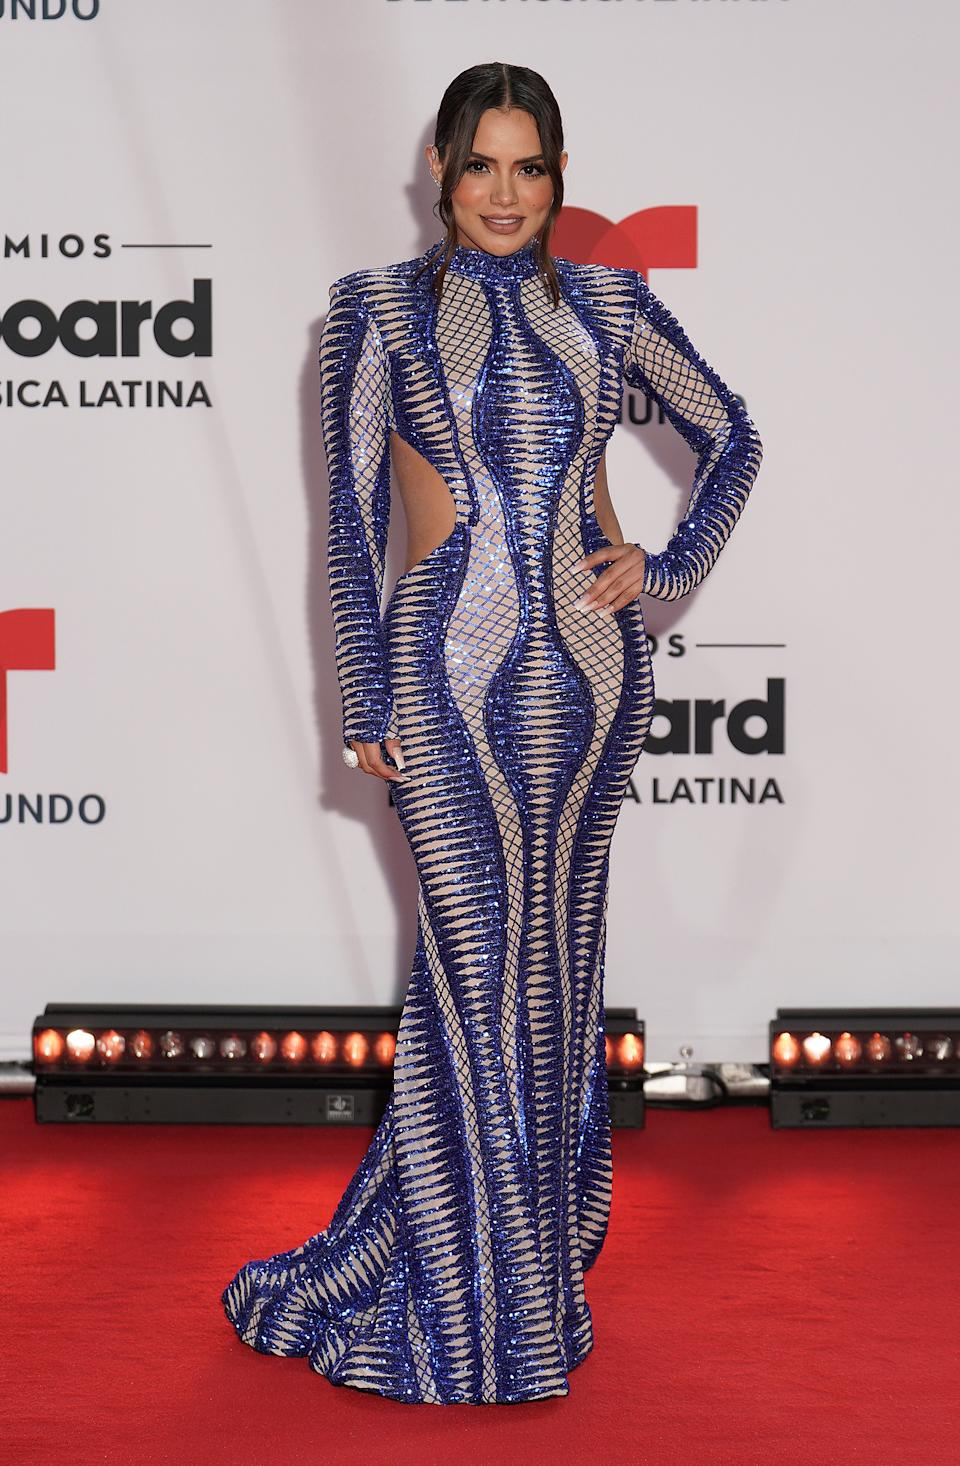 La actriz mexicana suspendió en la <em>red carpet</em> con un vestido <em>cut out</em> de Douglas Tapia. (Foto: Rodrigo Varela / Getty Images)